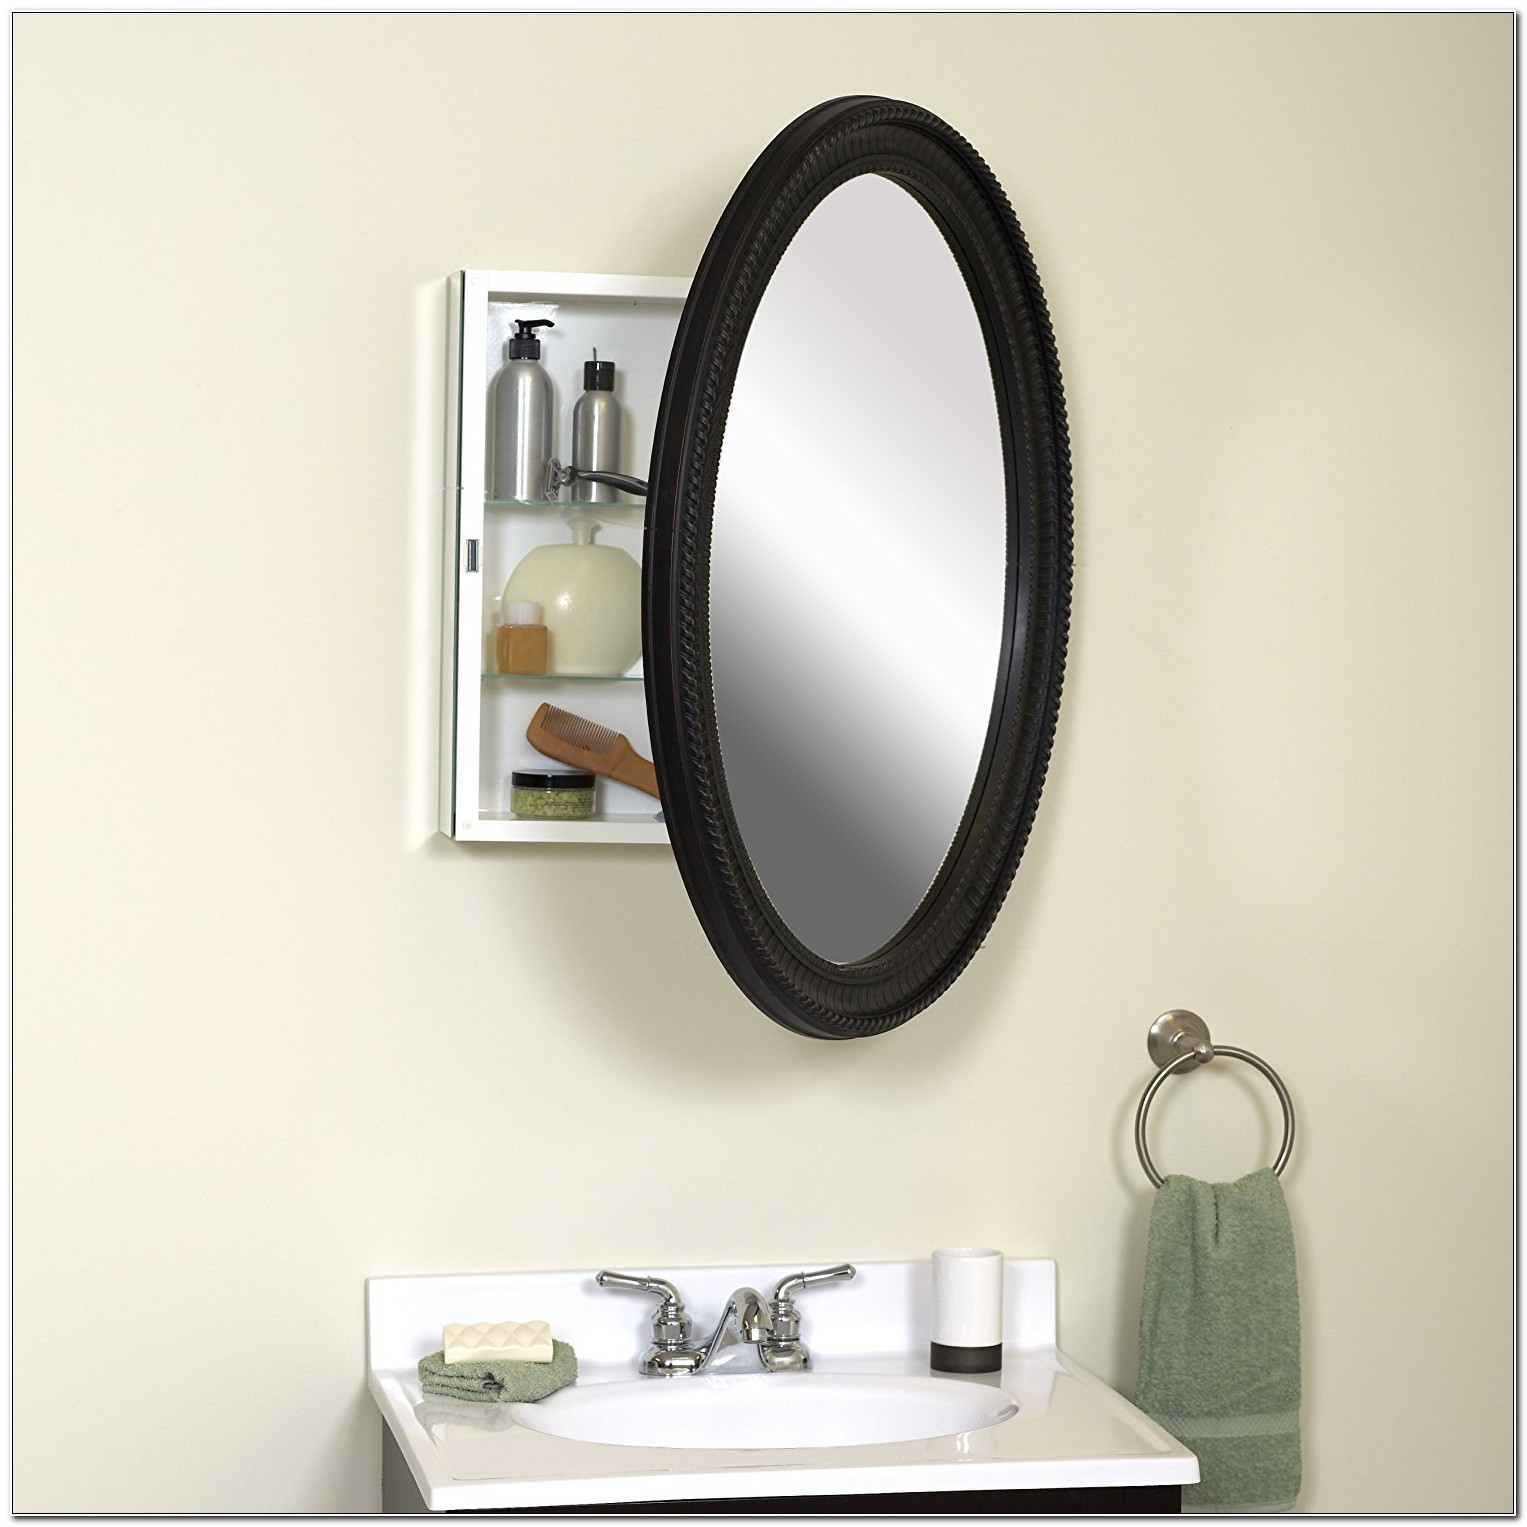 Recessed Oval Bathroom Medicine Cabinet